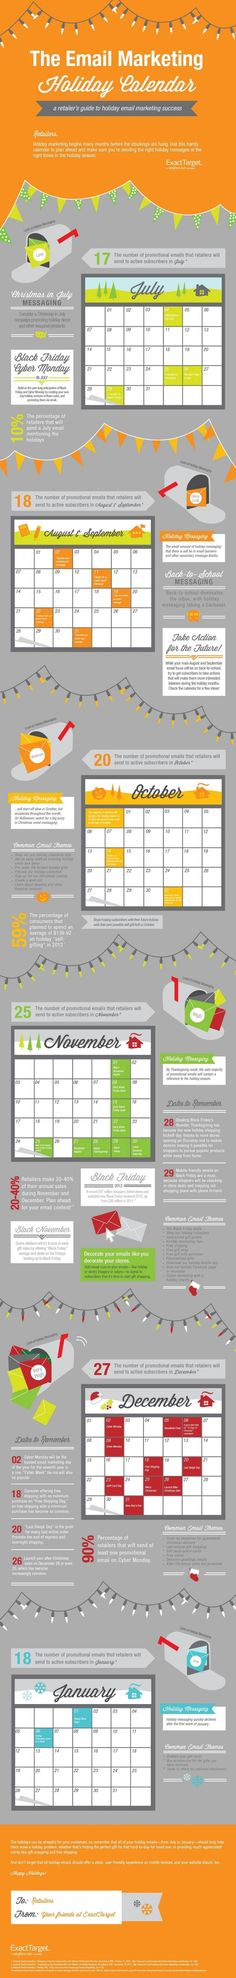 Email Marketing Holiday Calendar